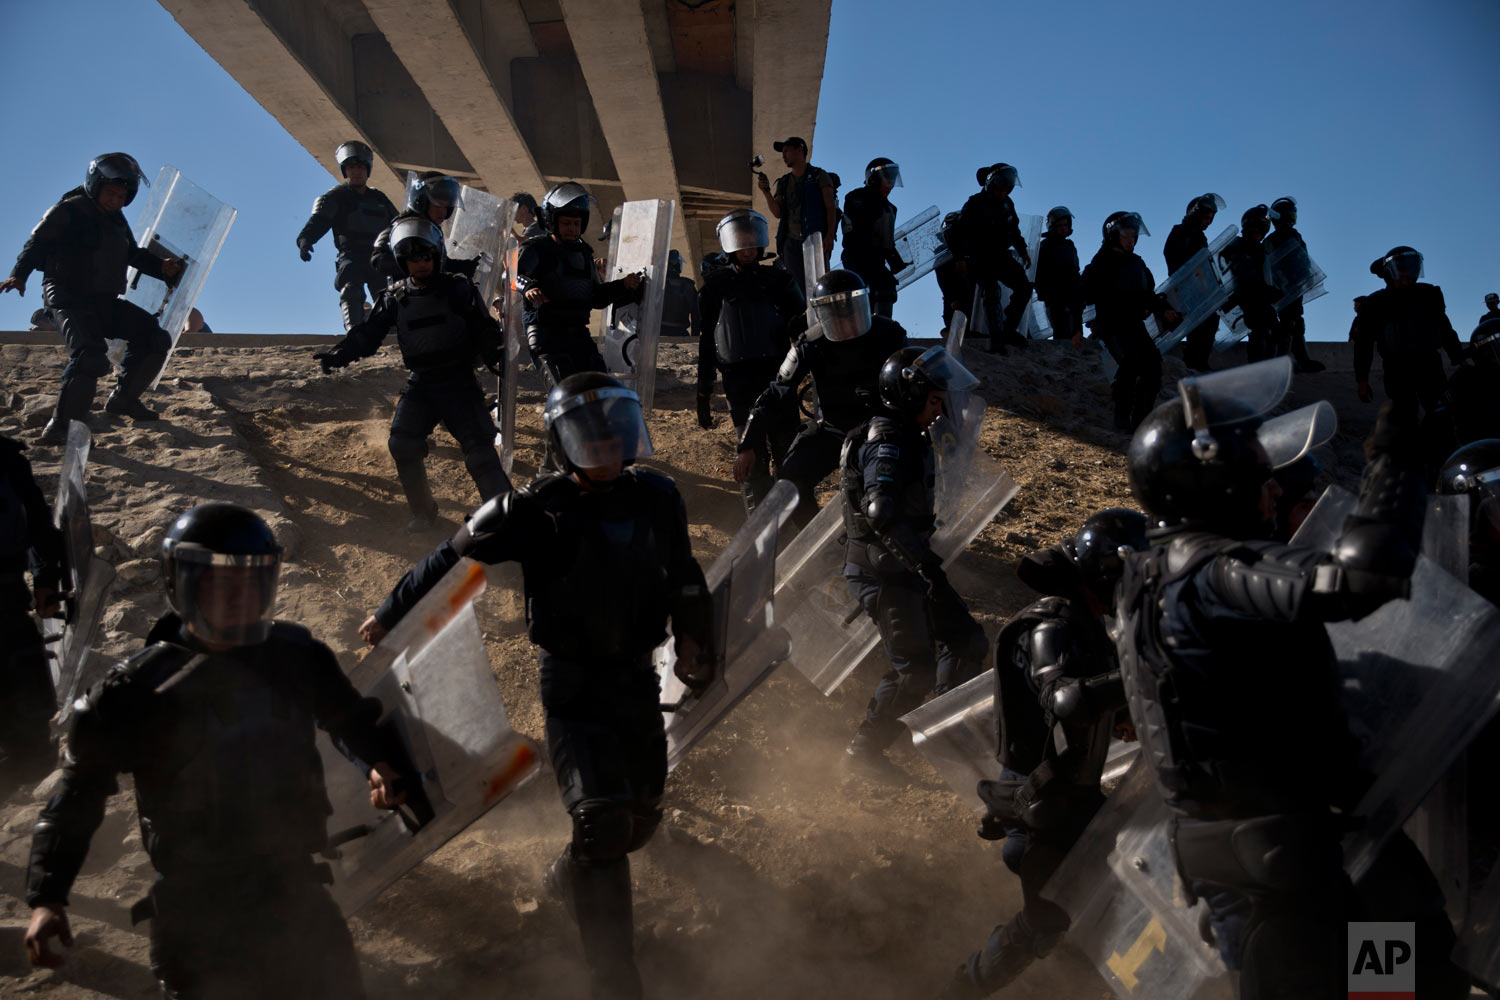 In this Nov. 25, 2018 photo, Mexican police try to keep Central American migrants from getting past the border crossing in Tijuana, Mexico. The mayor of Tijuana declared a humanitarian crisis in his city and said he asked the U.N. for aid to deal with the approximately 5,000 Central American migrants who arrived in caravans. (AP Photo/Ramon Espinosa)